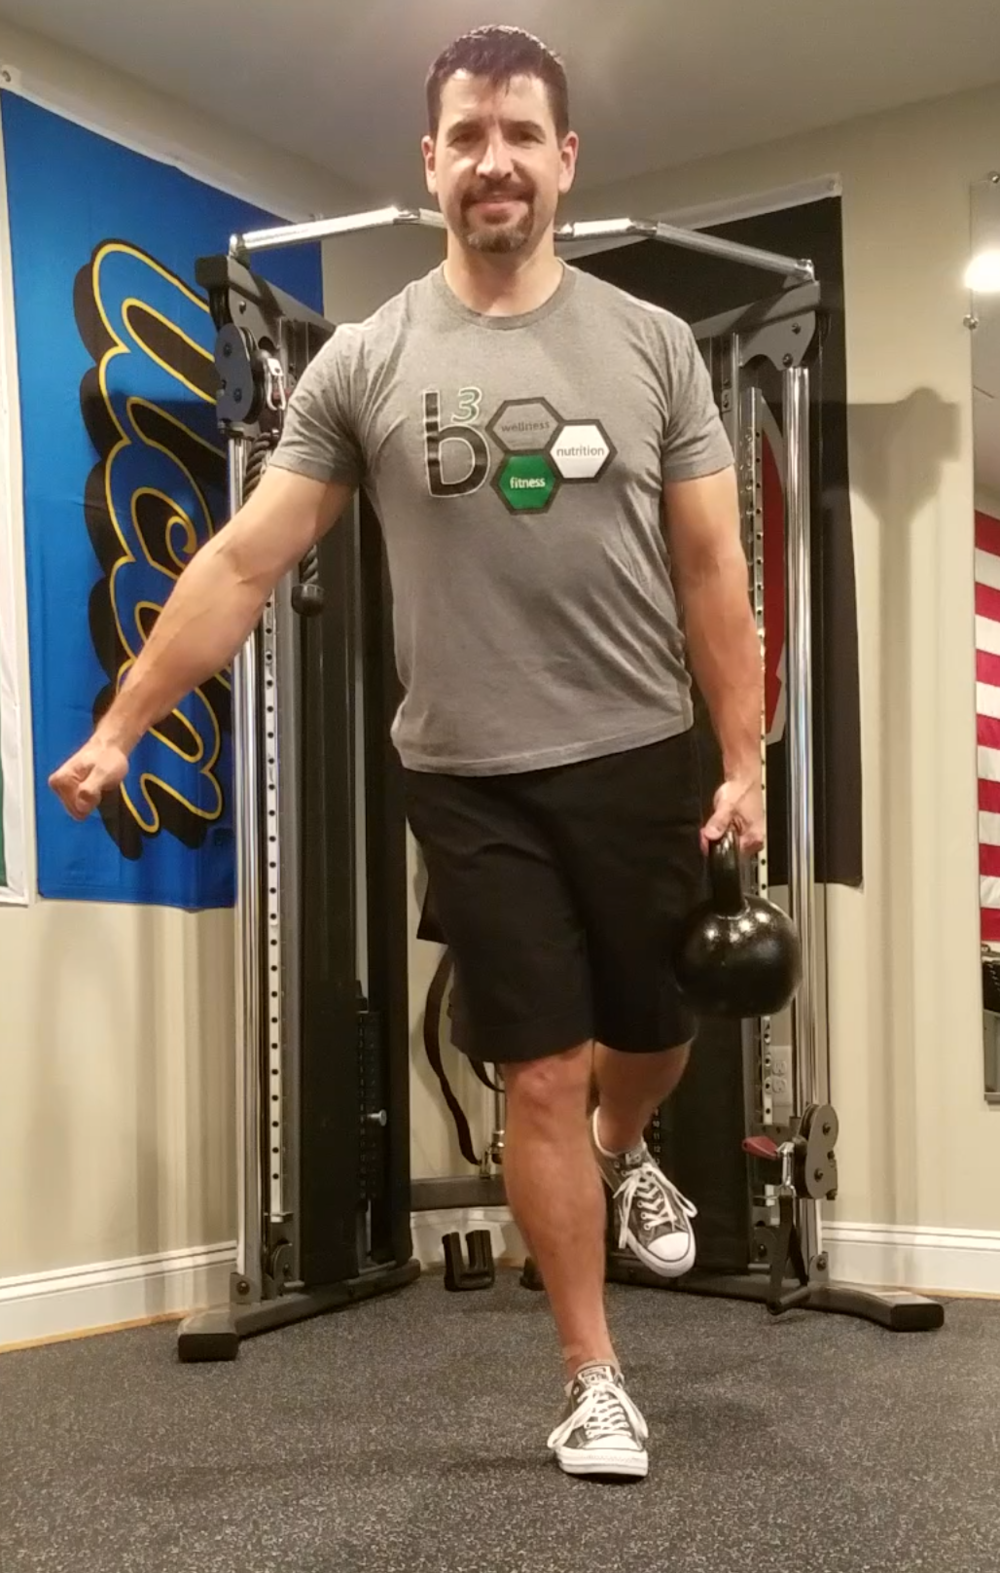 Contralateral Hold along the handle